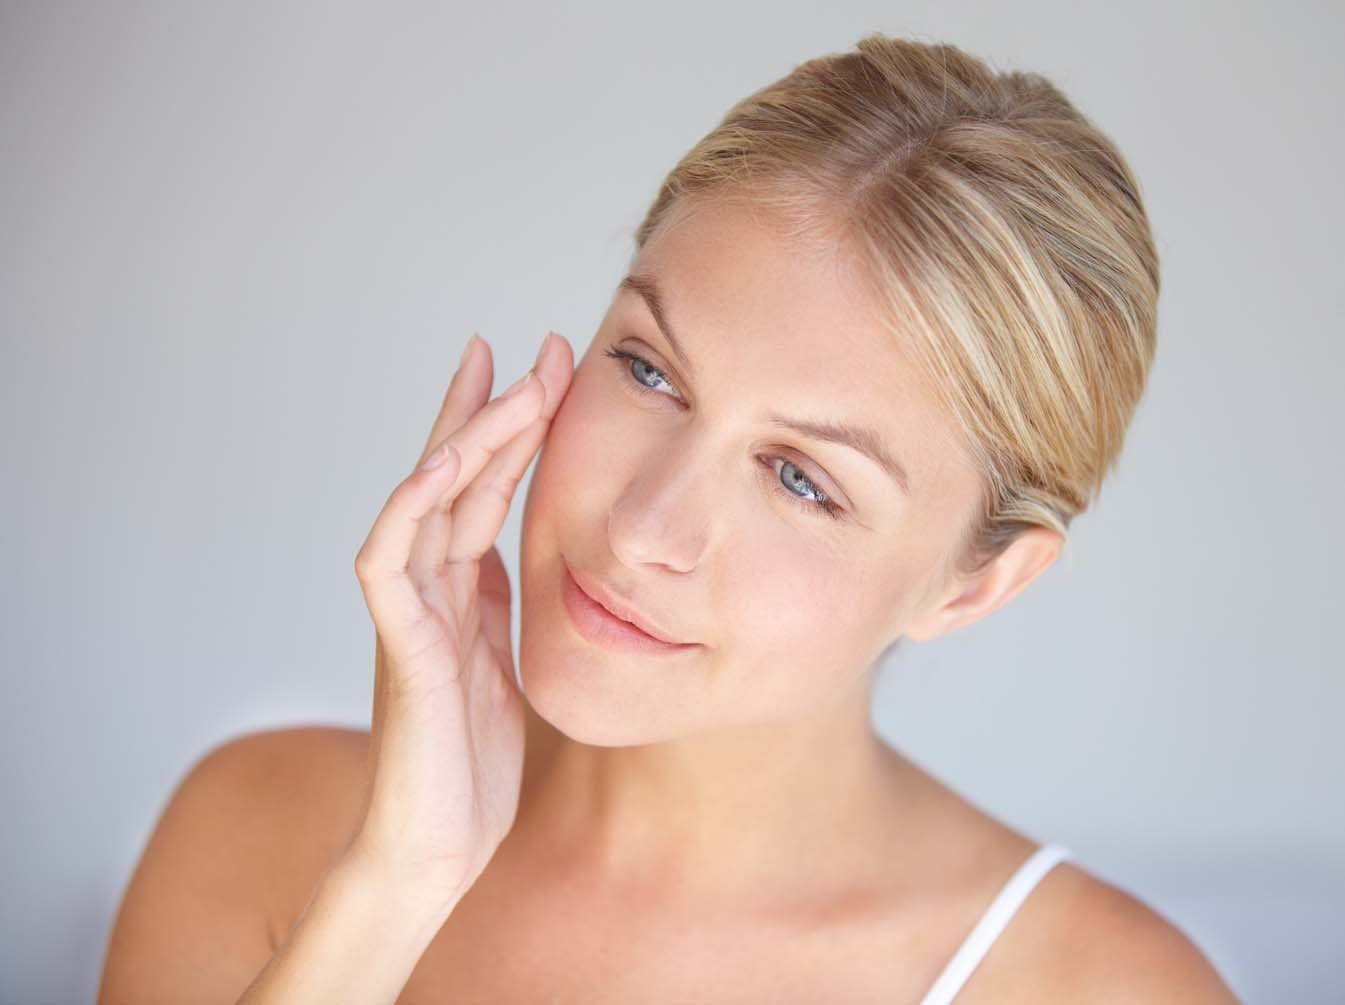 Woman face after beauty treatment